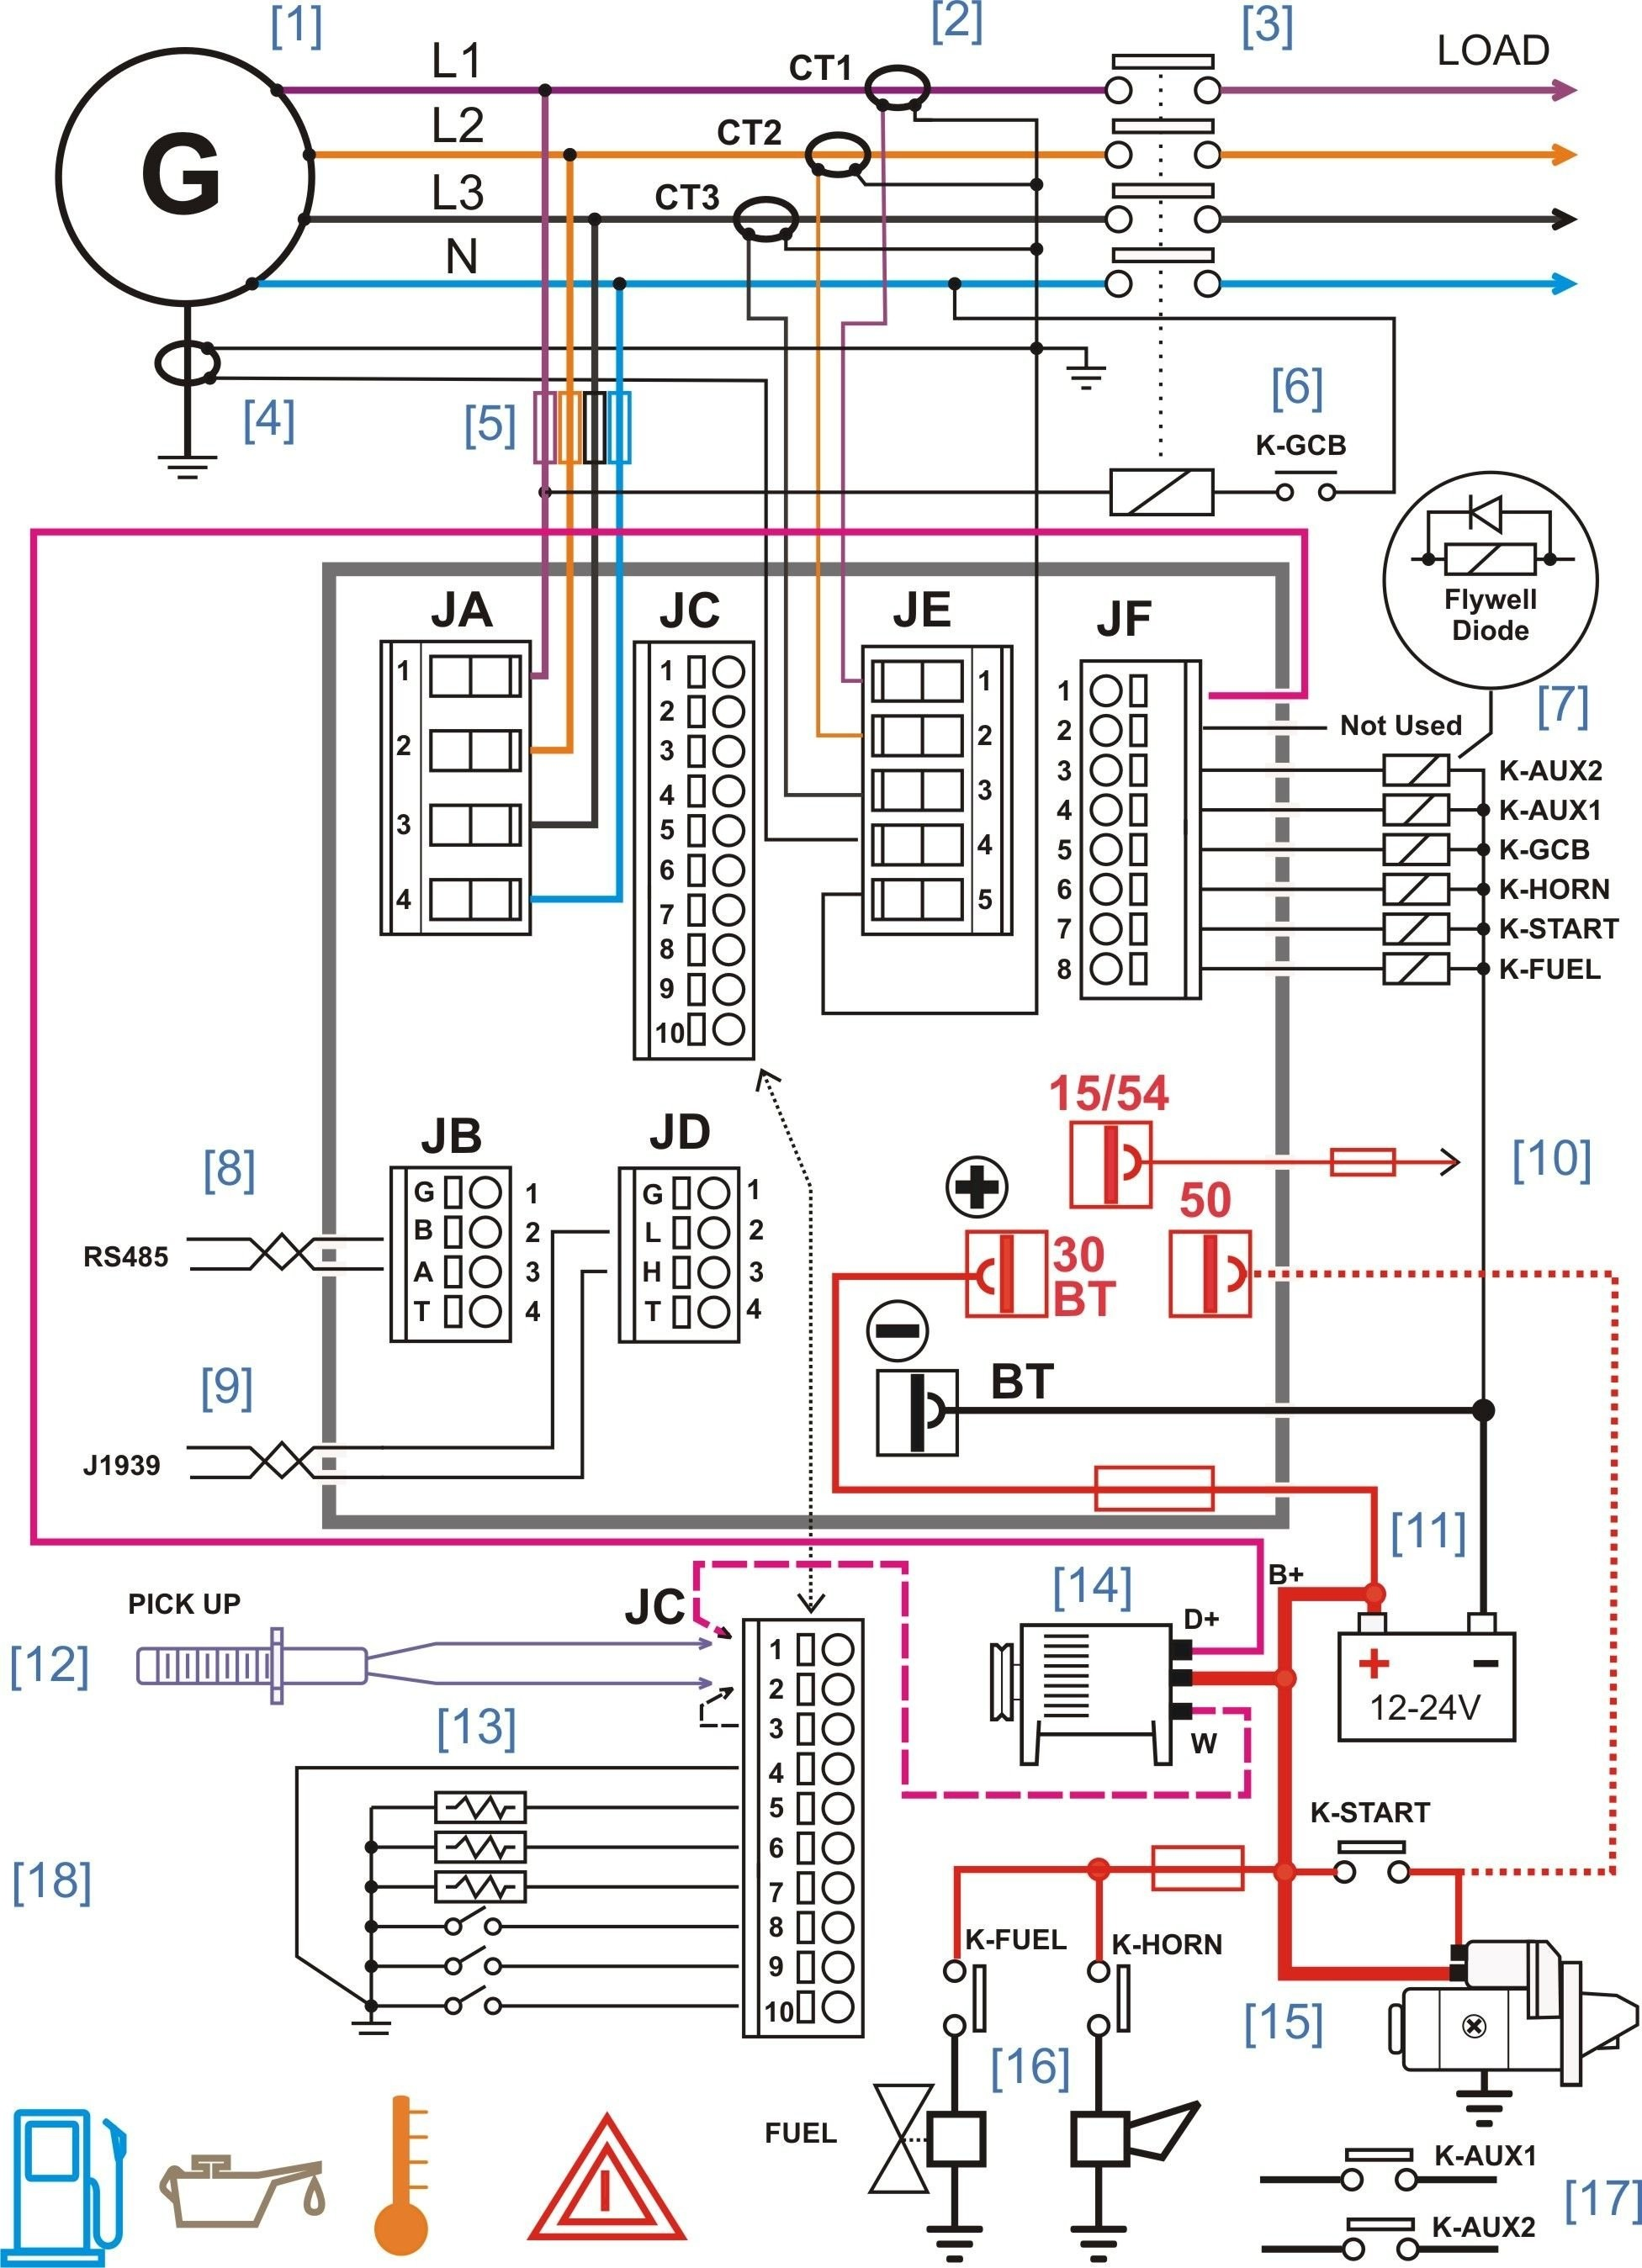 Power Converter 6345 Wiring Diagram Wn 2508] Magnetek 7345 Power Converter Wiring Diagram Of Power Converter 6345 Wiring Diagram